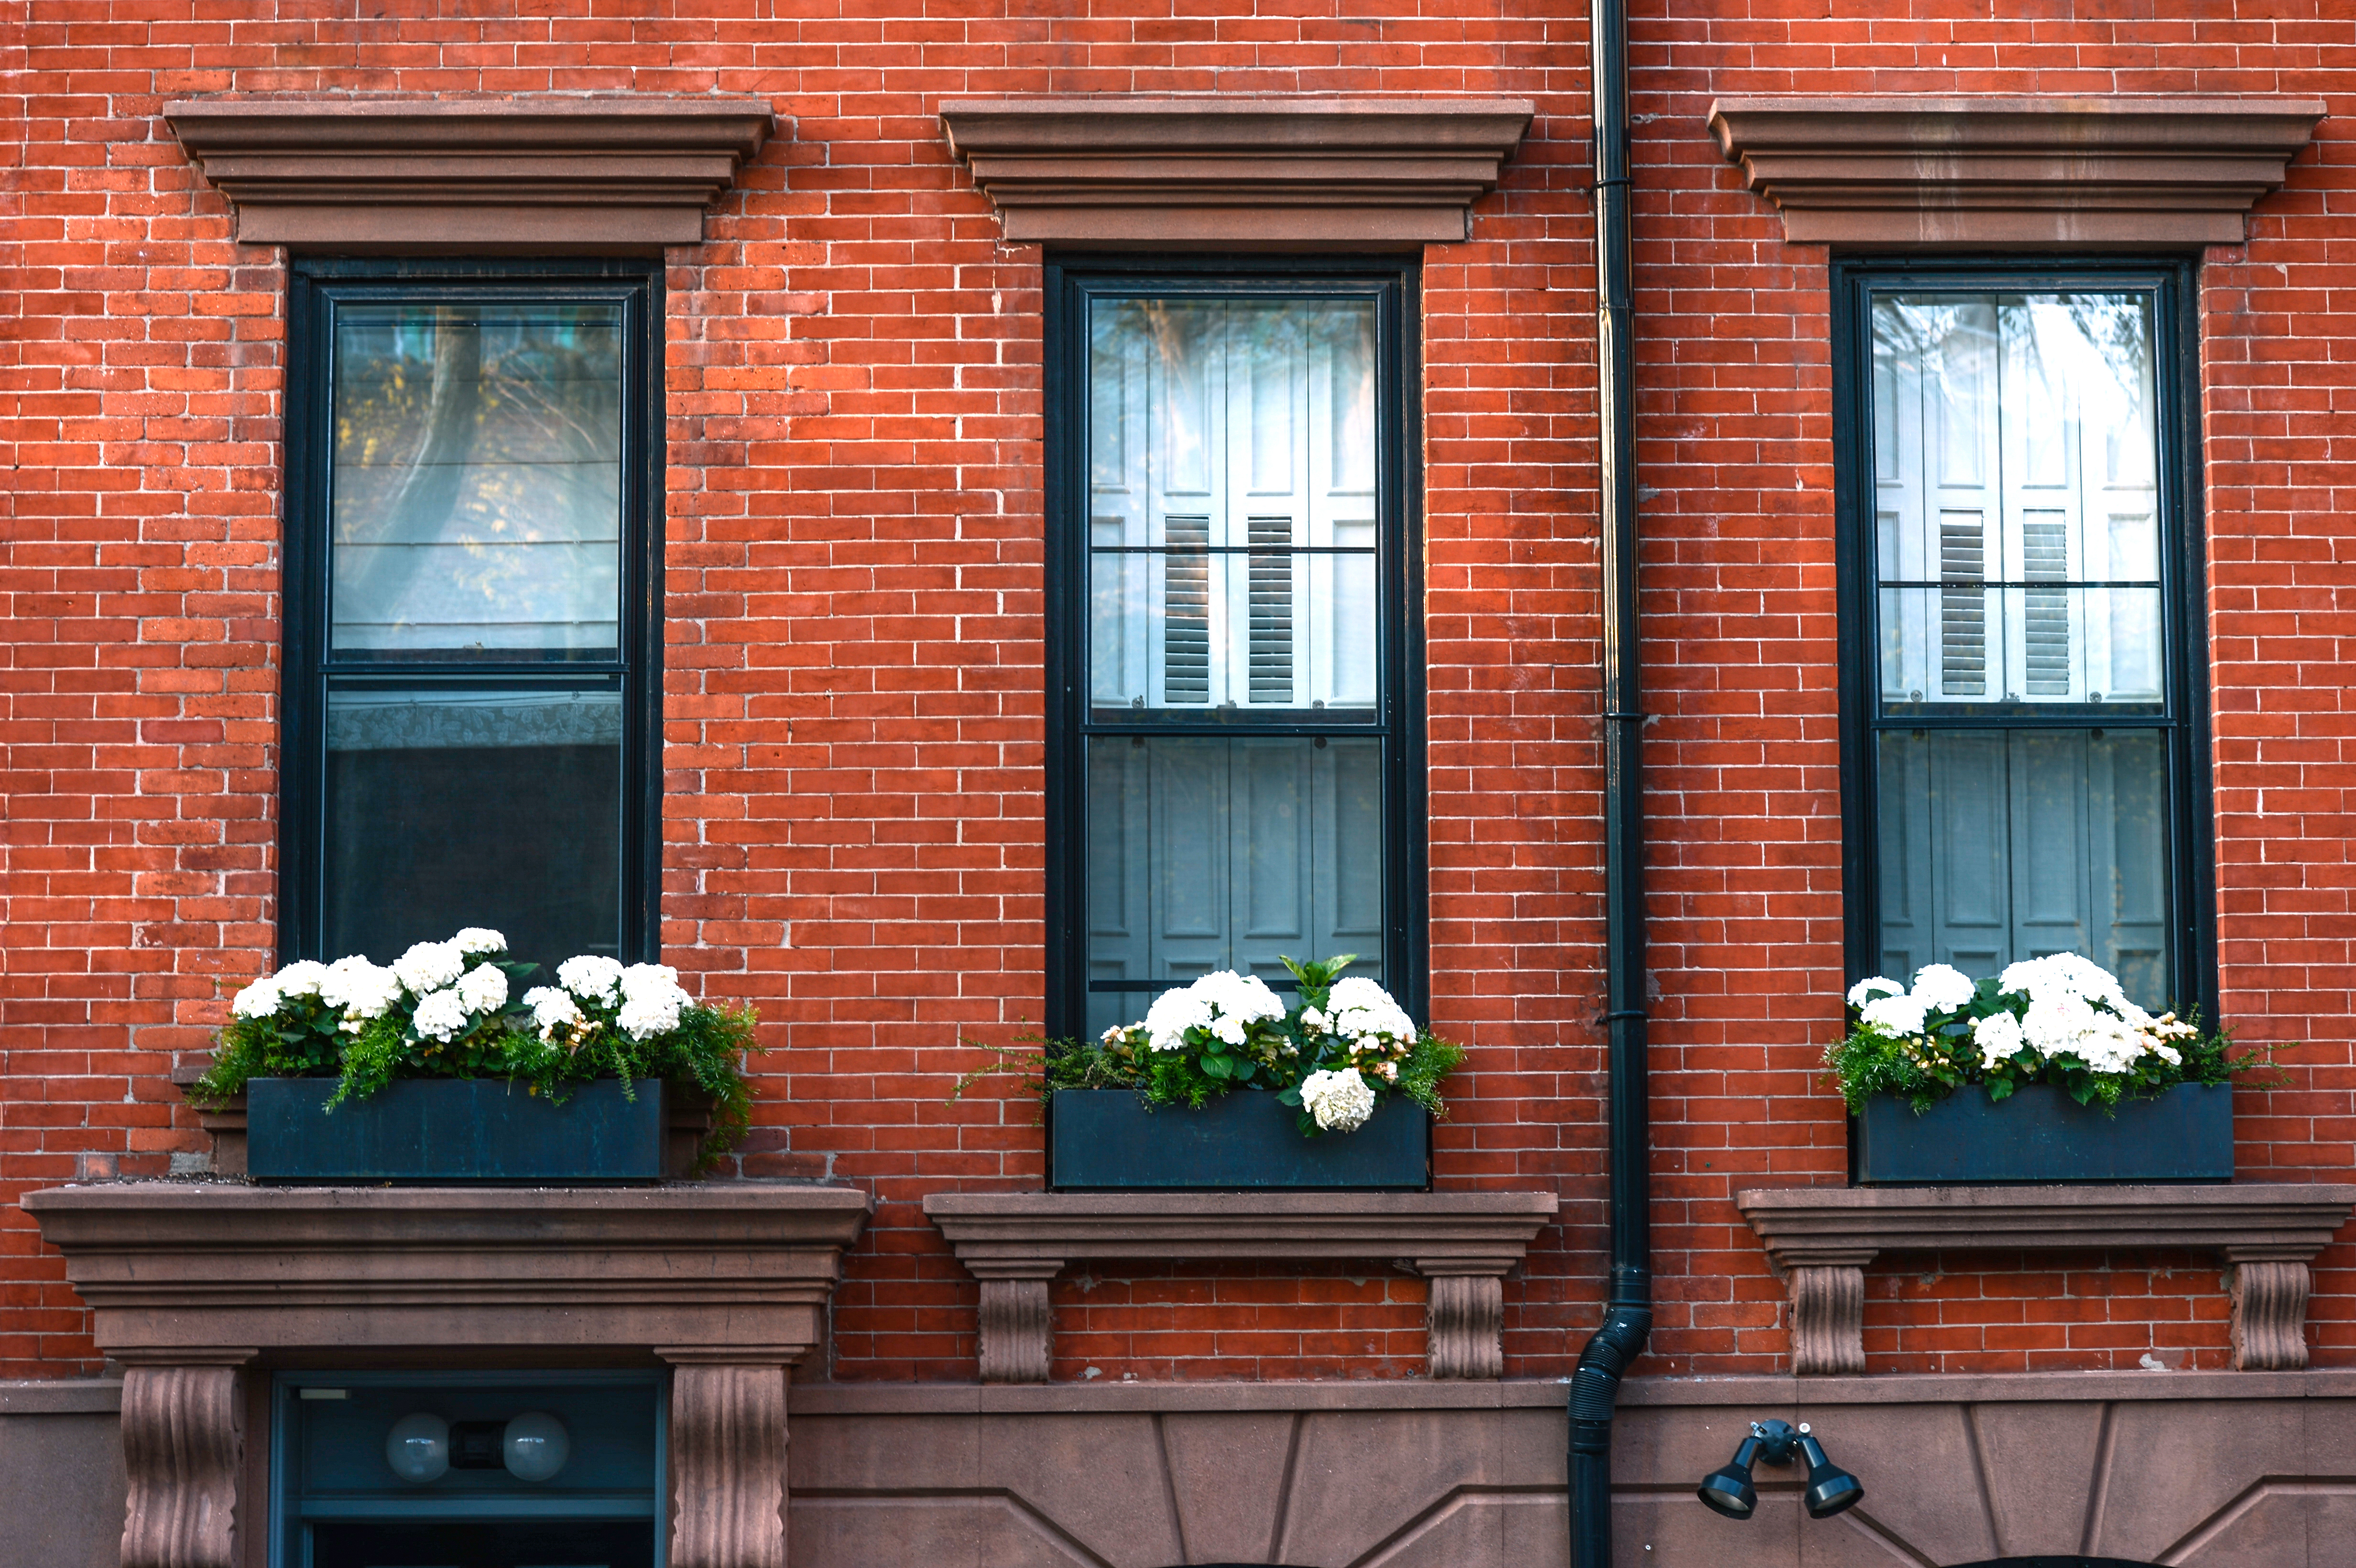 Brick Apartment Building Window investors see opportunity in value-add strategies for class-b